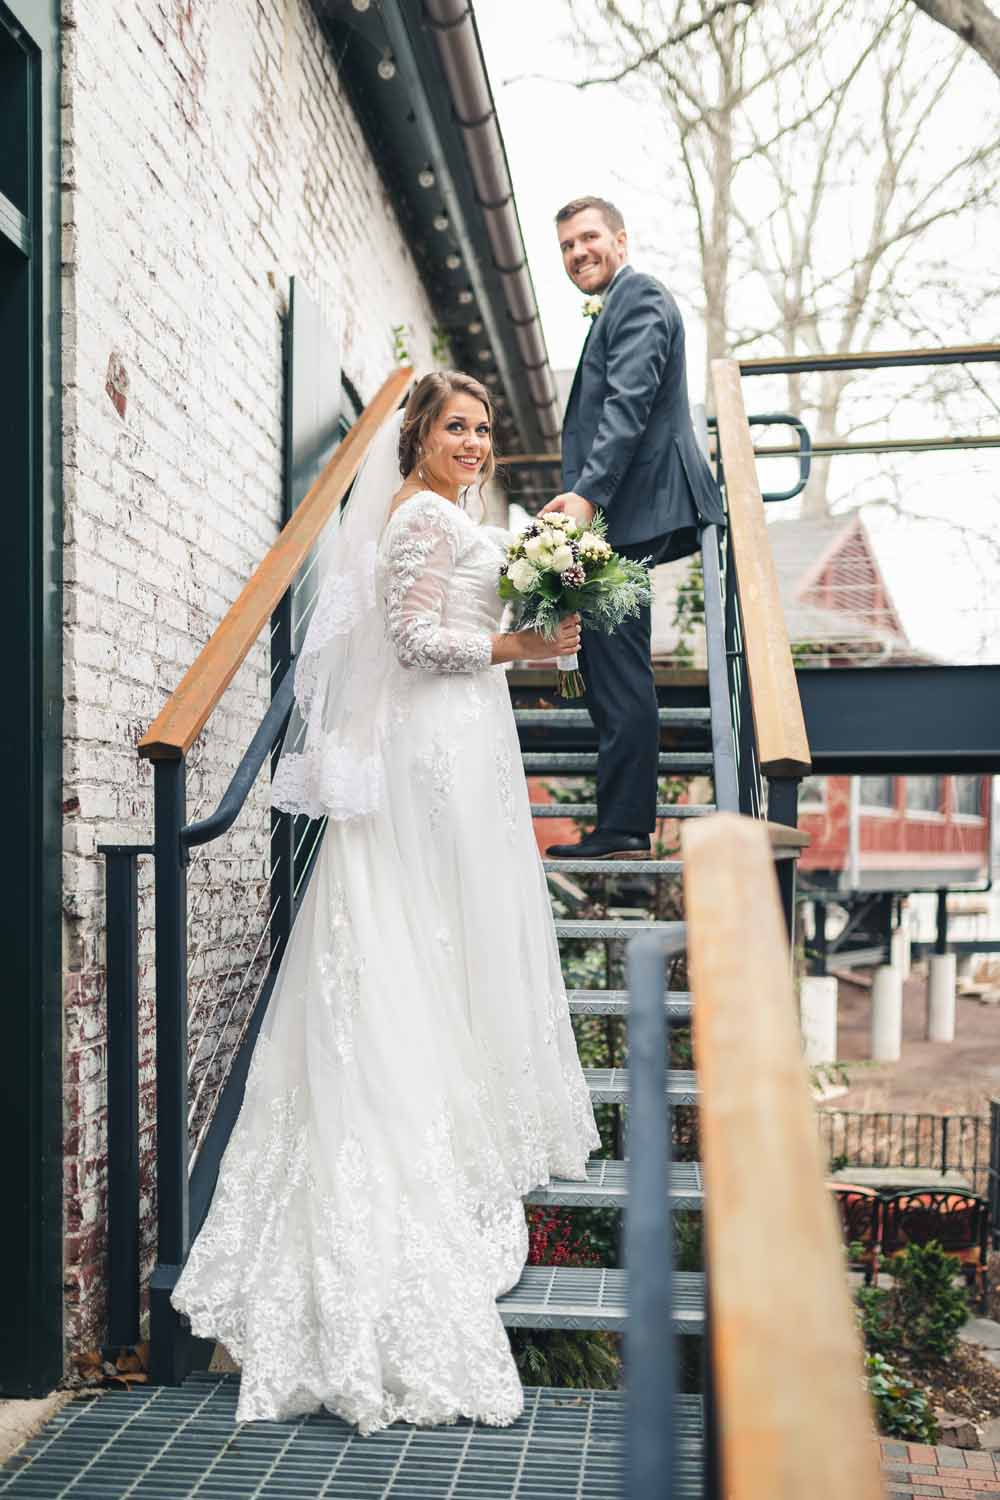 Bride and groom pose on stairs at New Hope Carriage House